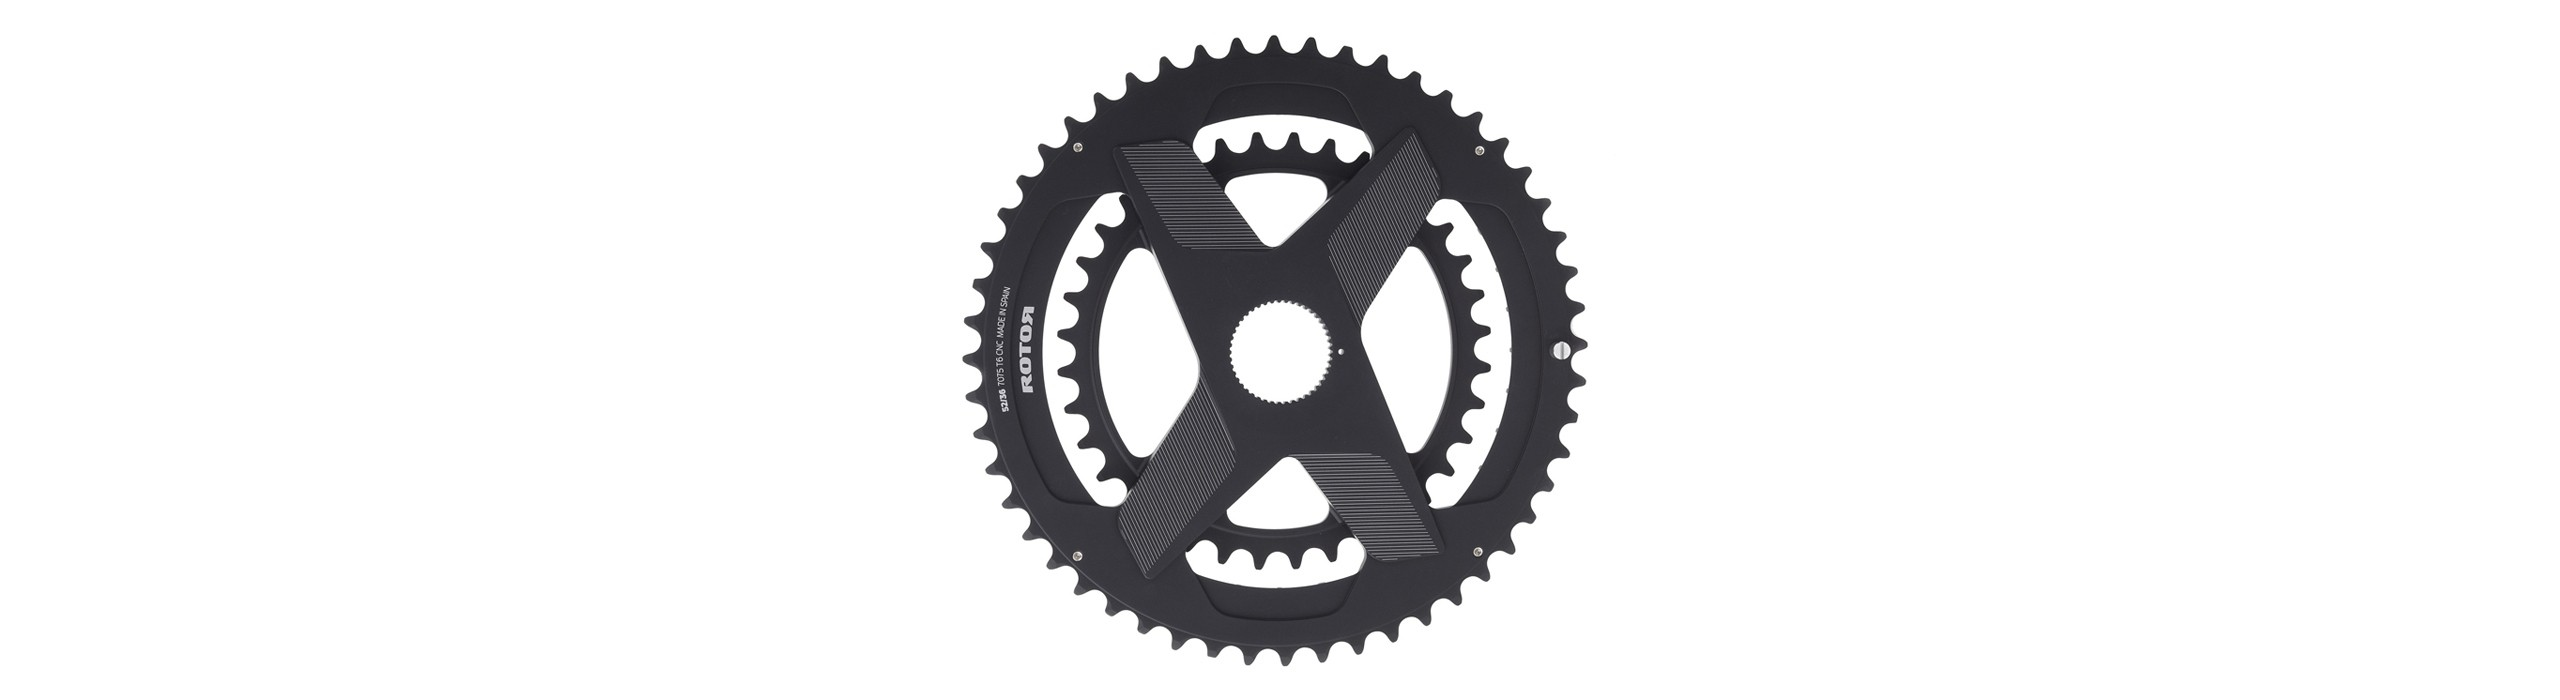 DM Round Chainring